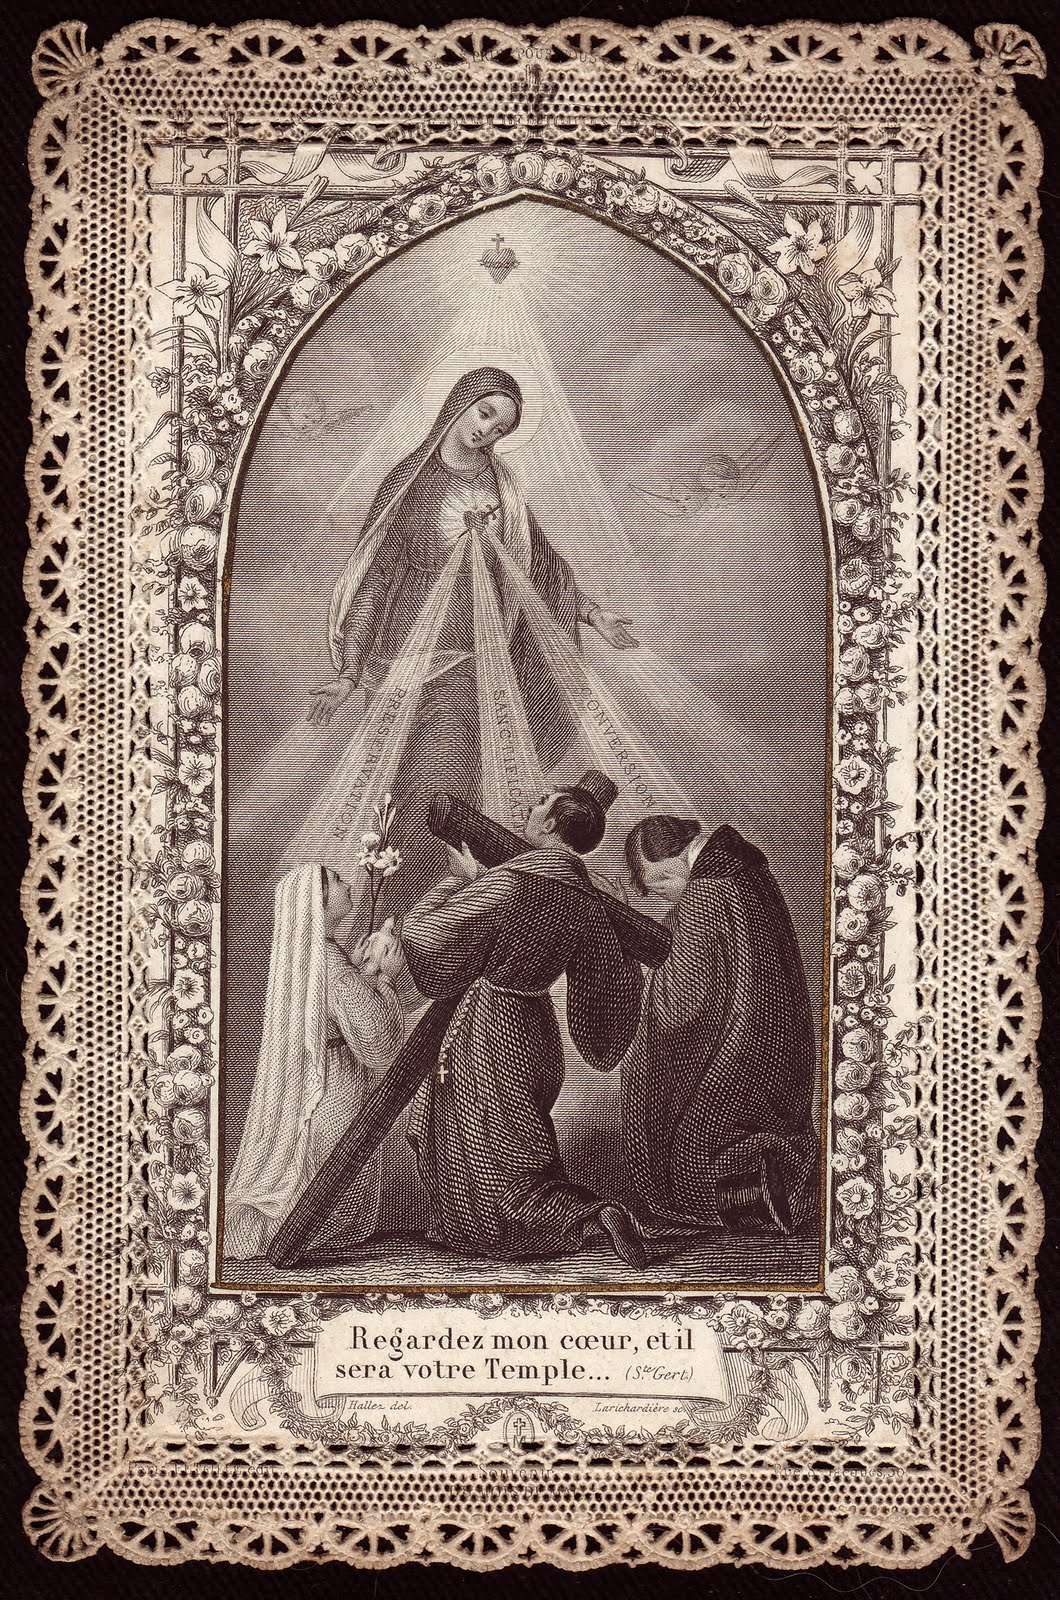 consecration of the family to the immaculate heart of mary